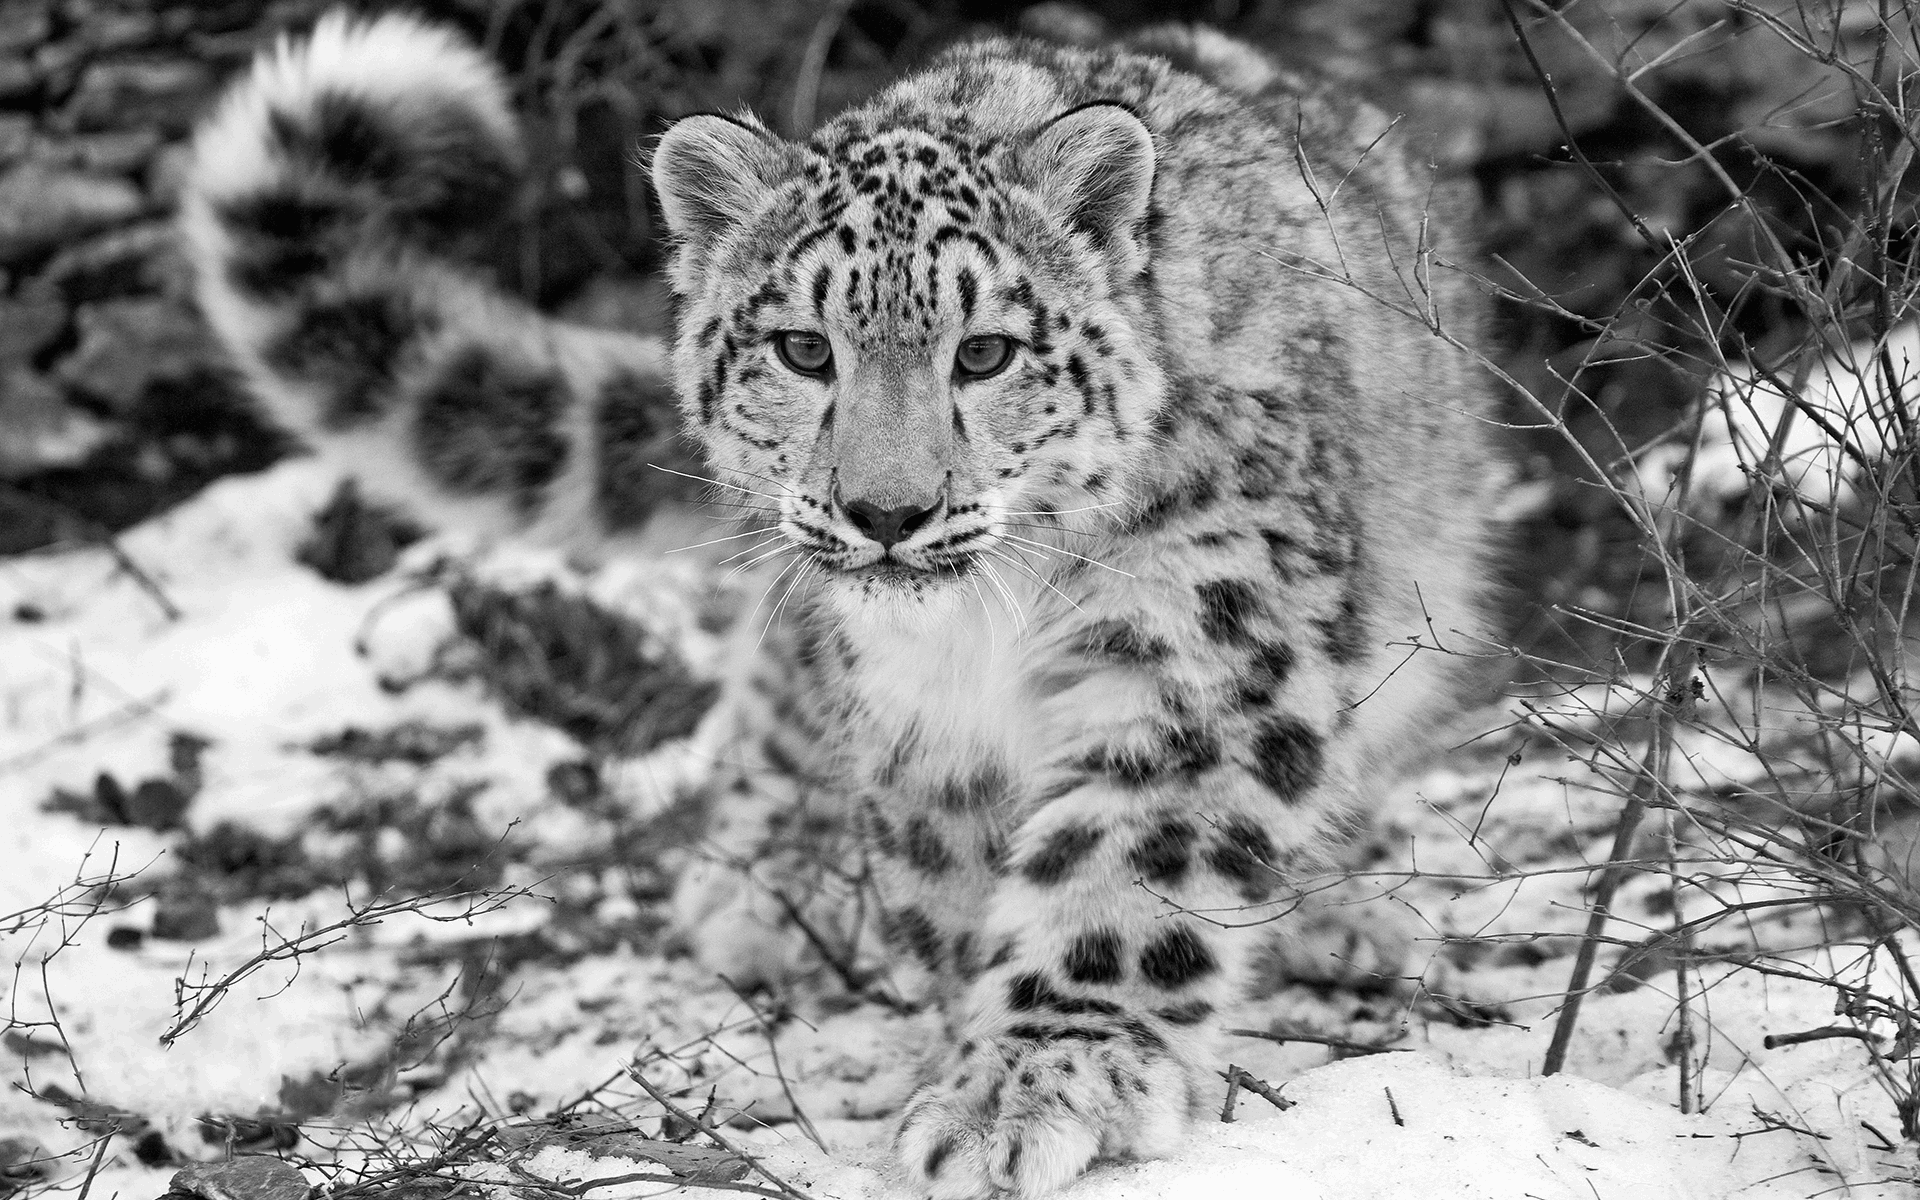 Pin By Cortney Kinyon On Animals Snow Leopard Wallpaper Leopard Wallpaper Snow Leopard